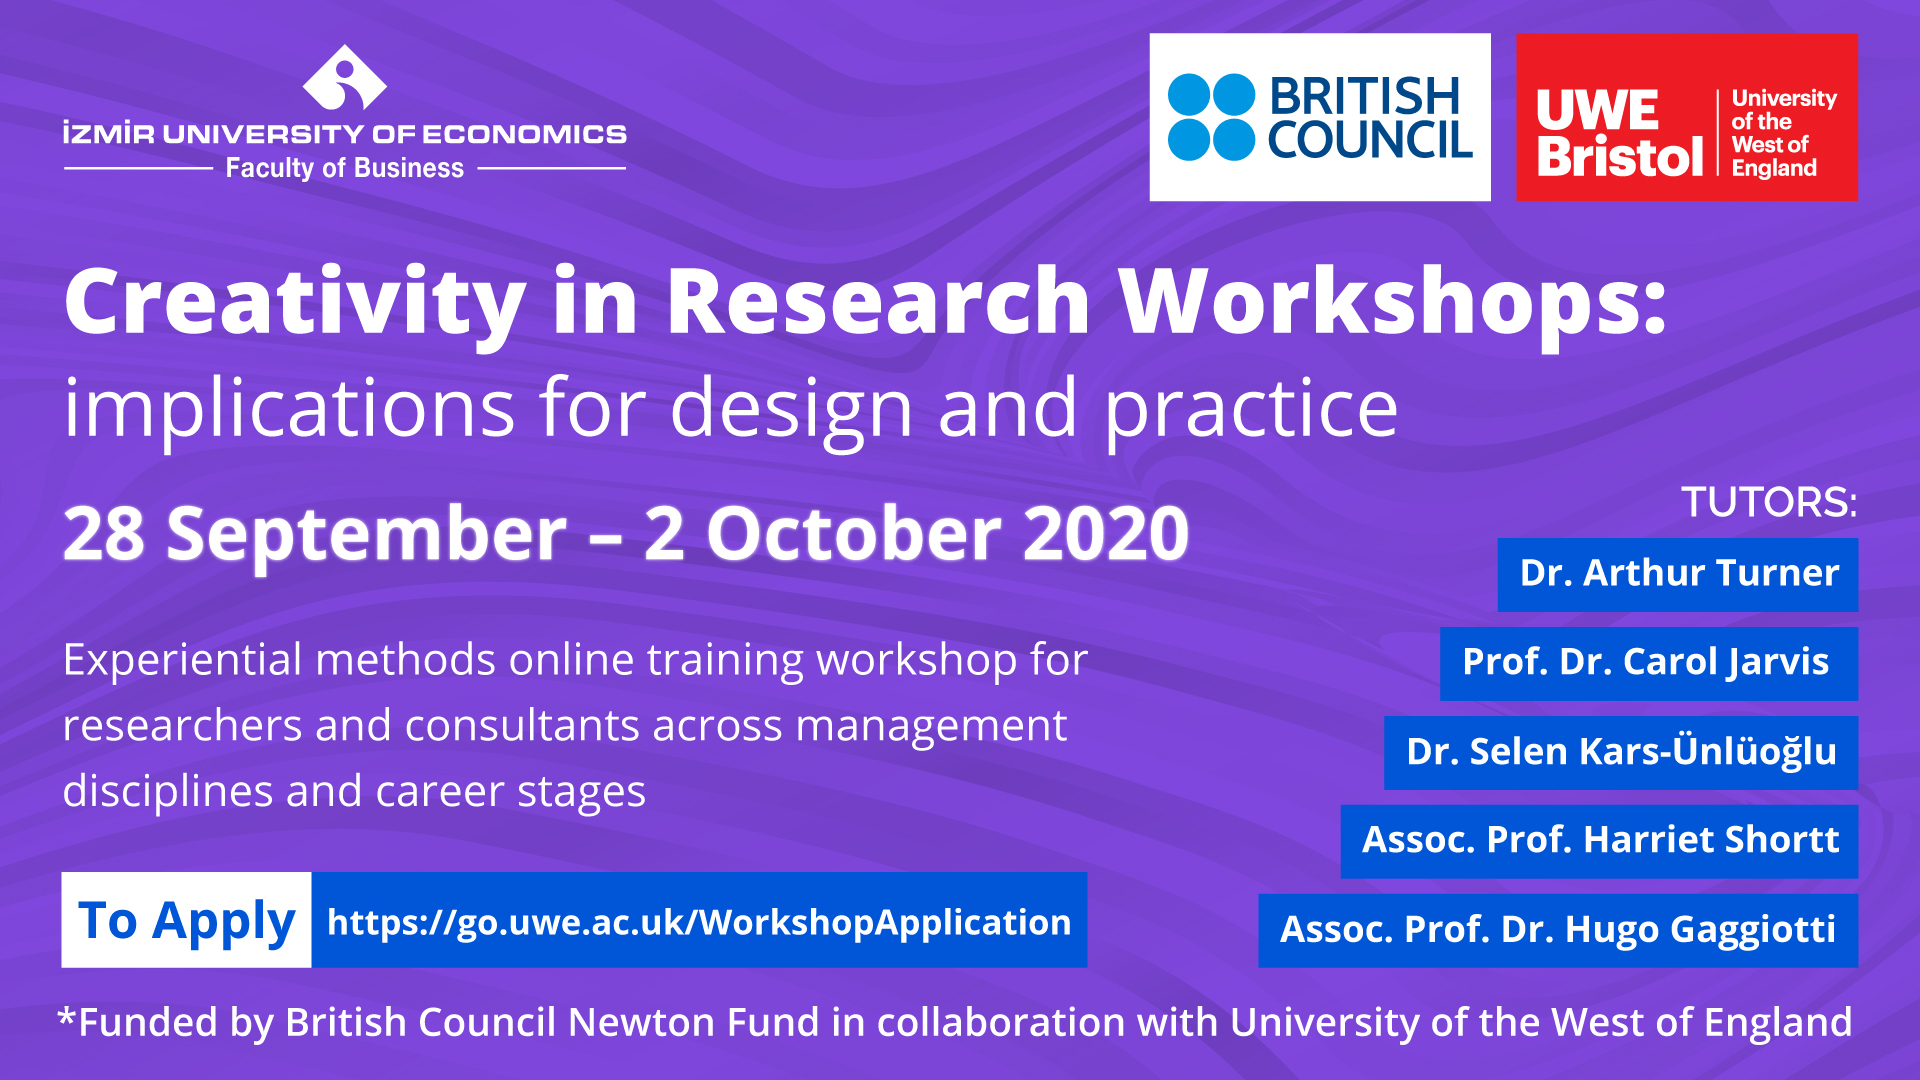 Creativity in Research Workshops